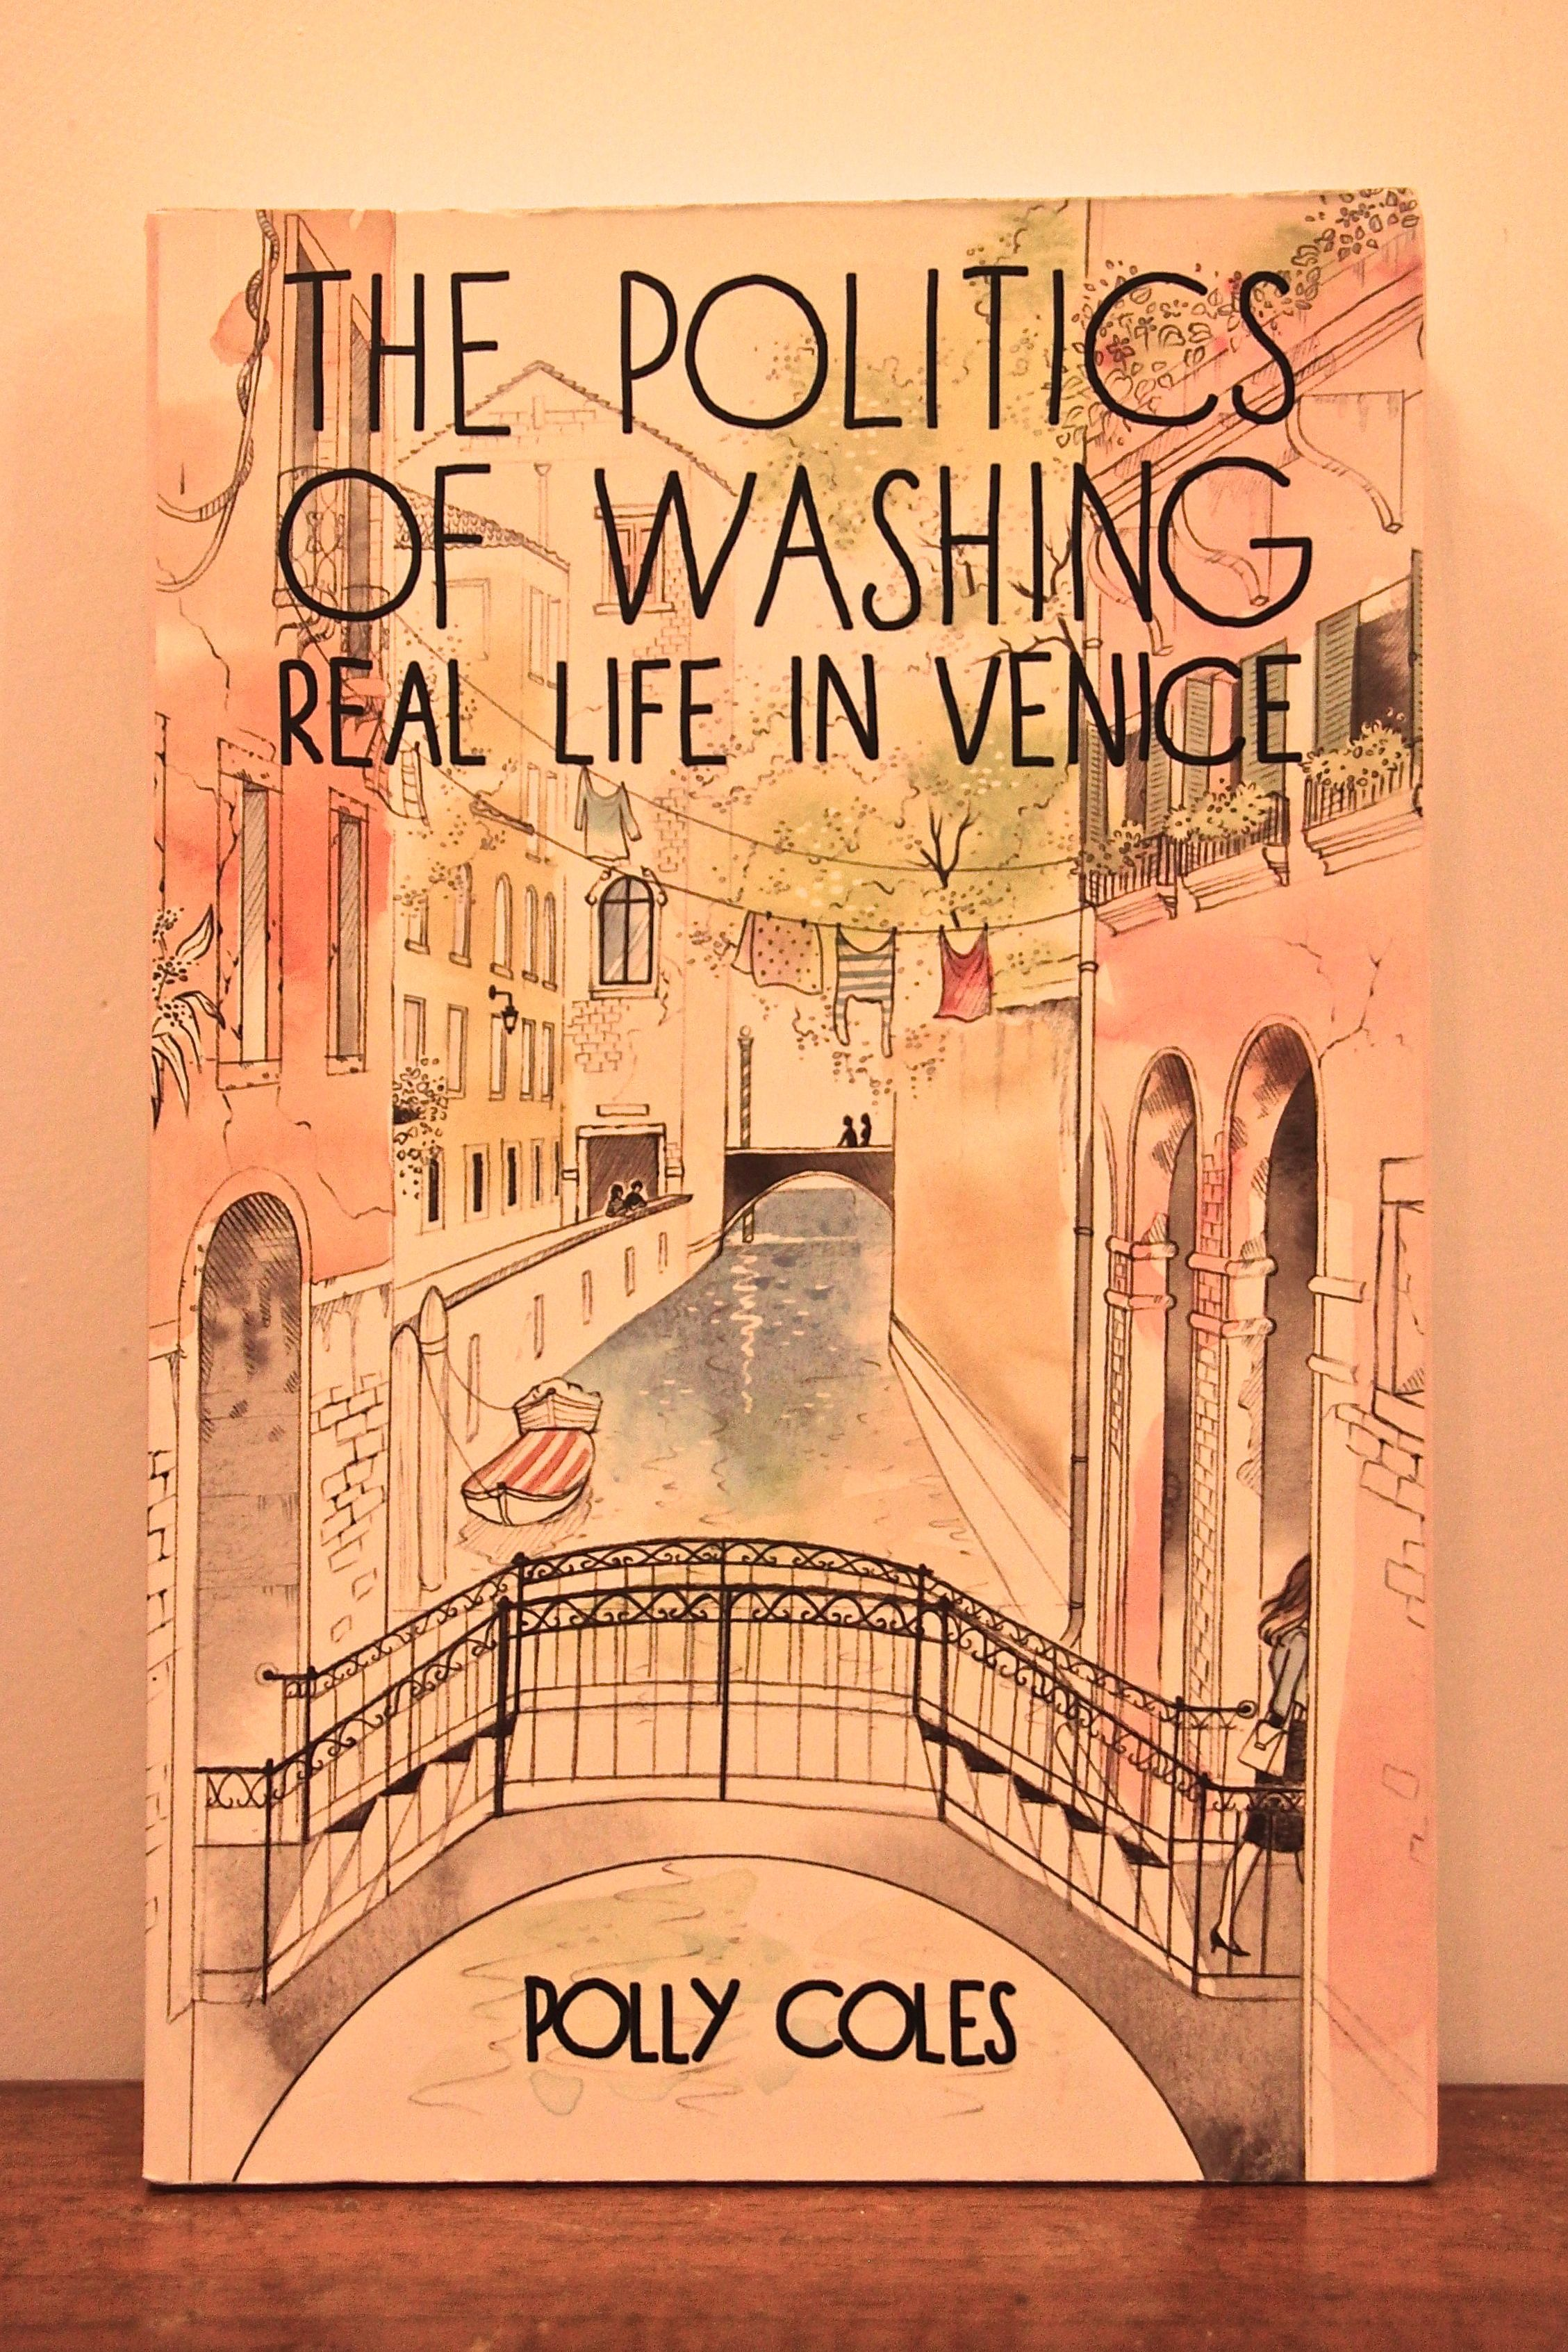 A light-hearted, truthful look at life as an expat in Venice